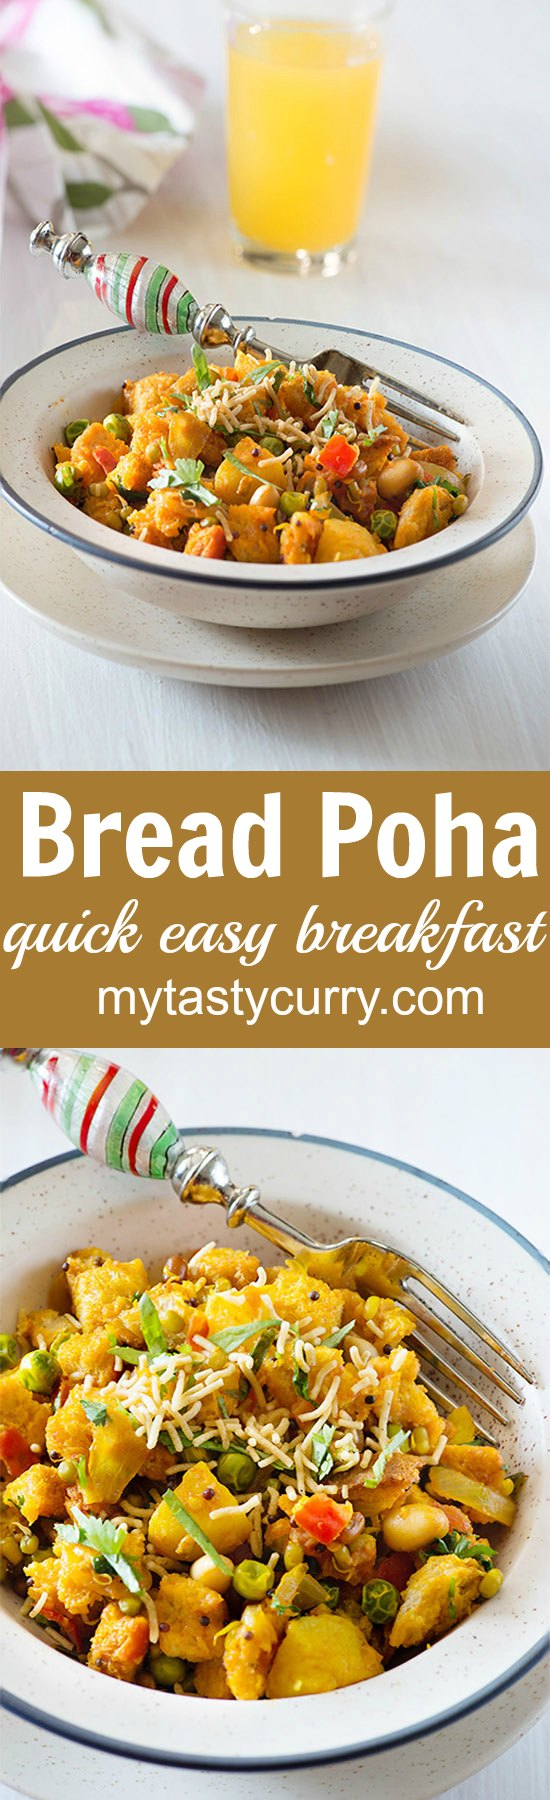 Bread poha recipe indian breakfast recipe my tasty curry bread poha is simple indian breakfast that is made by cooking chunks of leftover bread in forumfinder Gallery